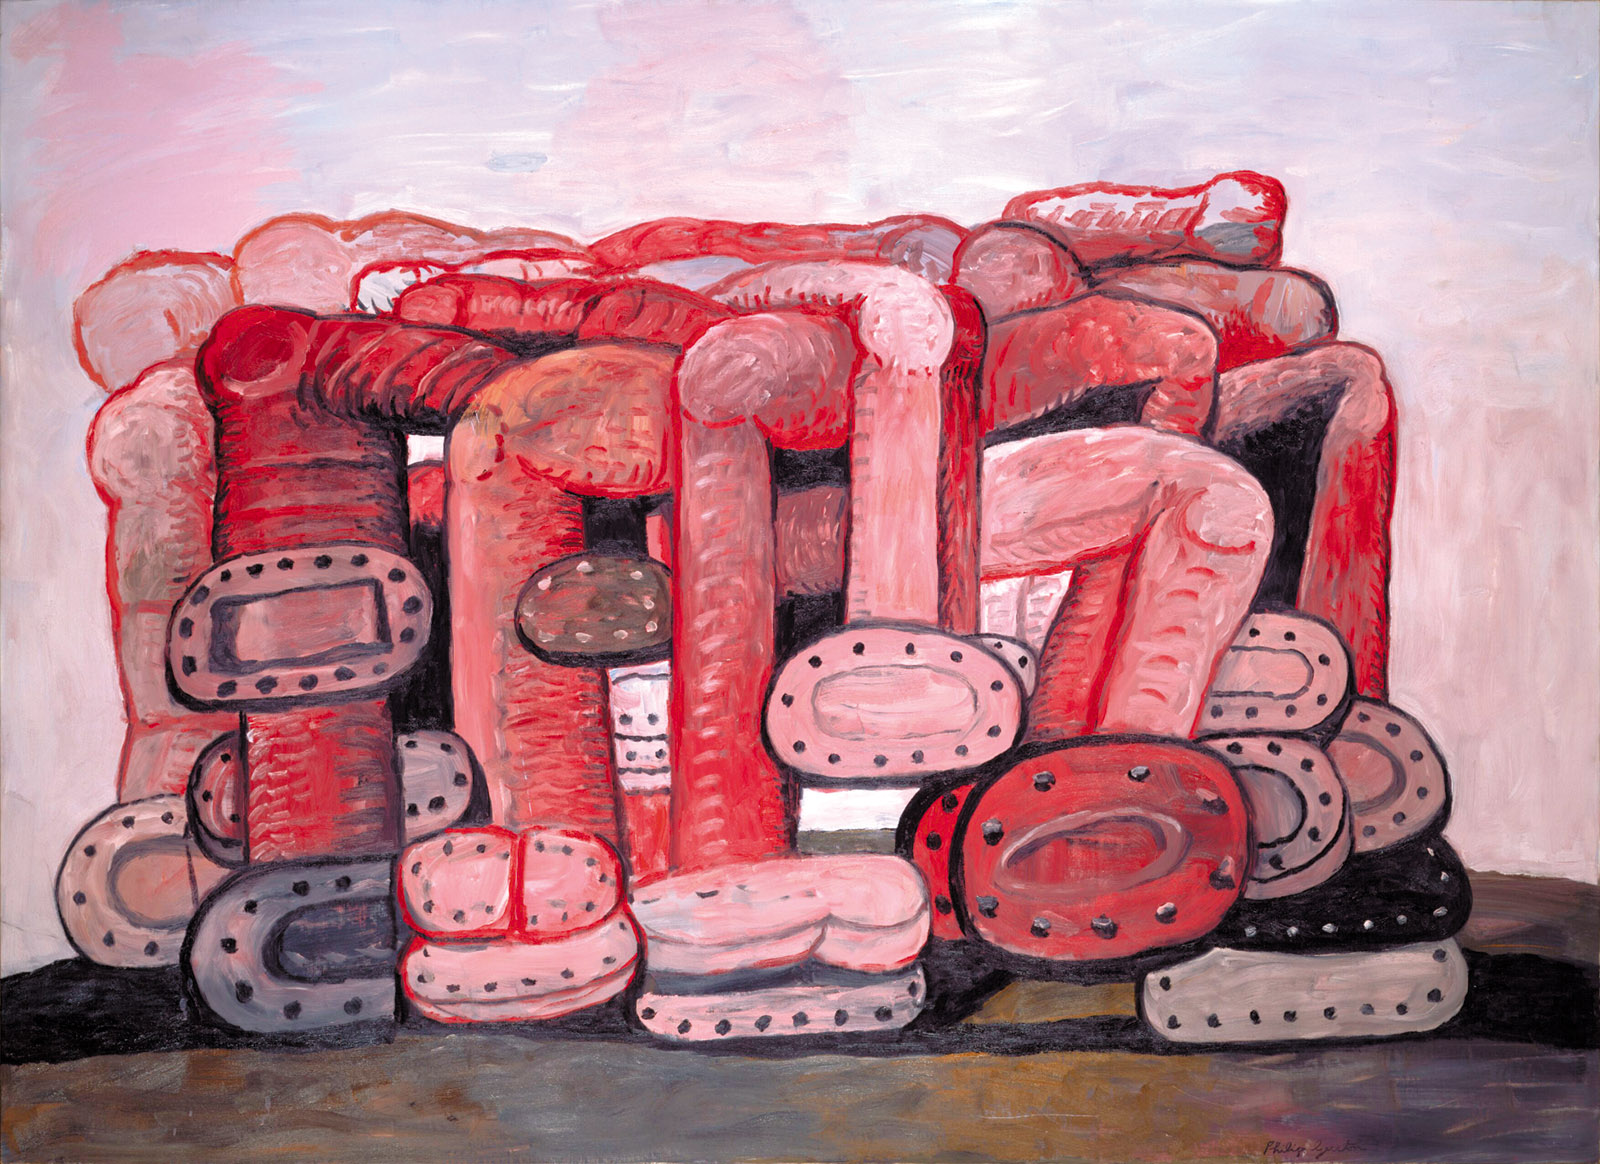 Monument, 1976; painting by Philip Guston